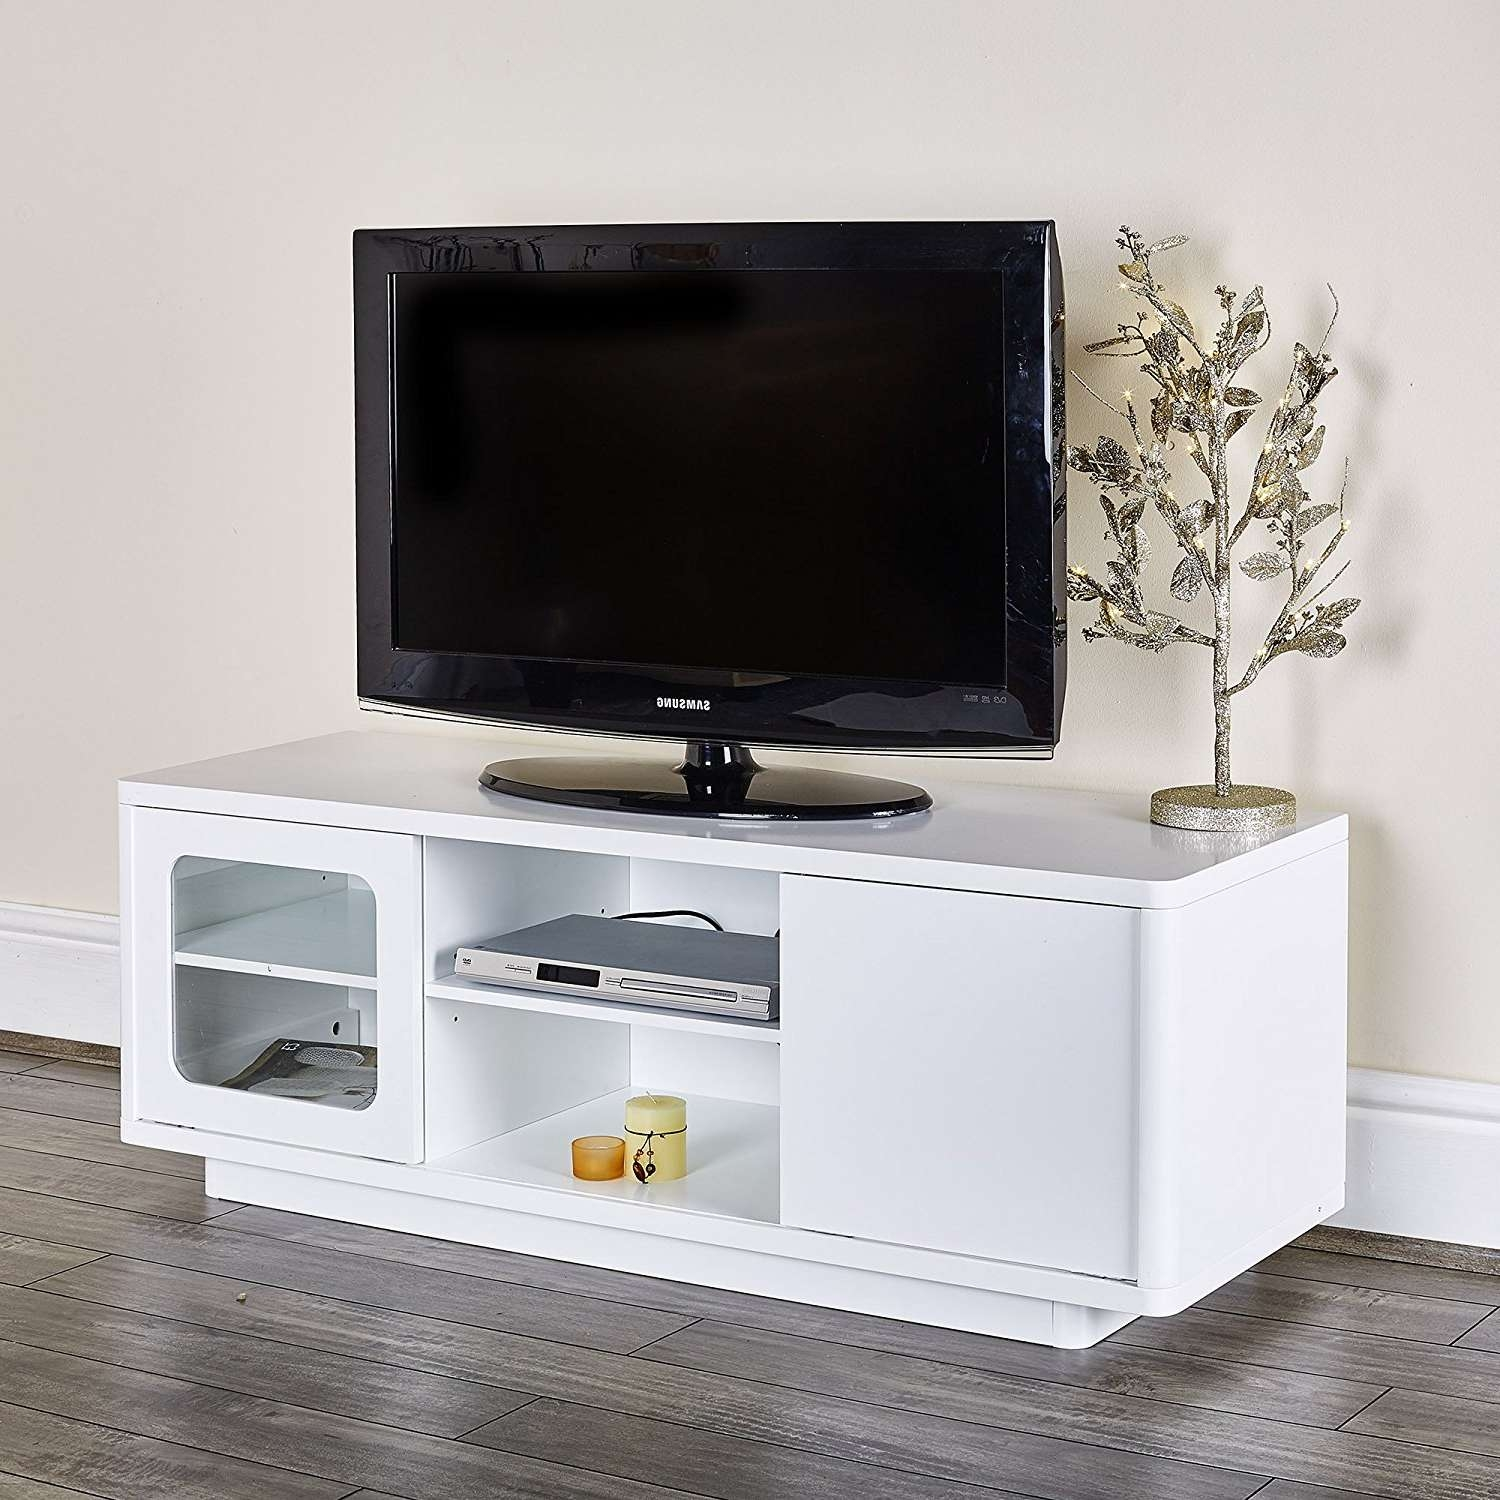 Charming Ideas White Tv Cabinet Tv Units Stands Cabinets Pertaining To Tv Stands And Cabinets (View 10 of 15)